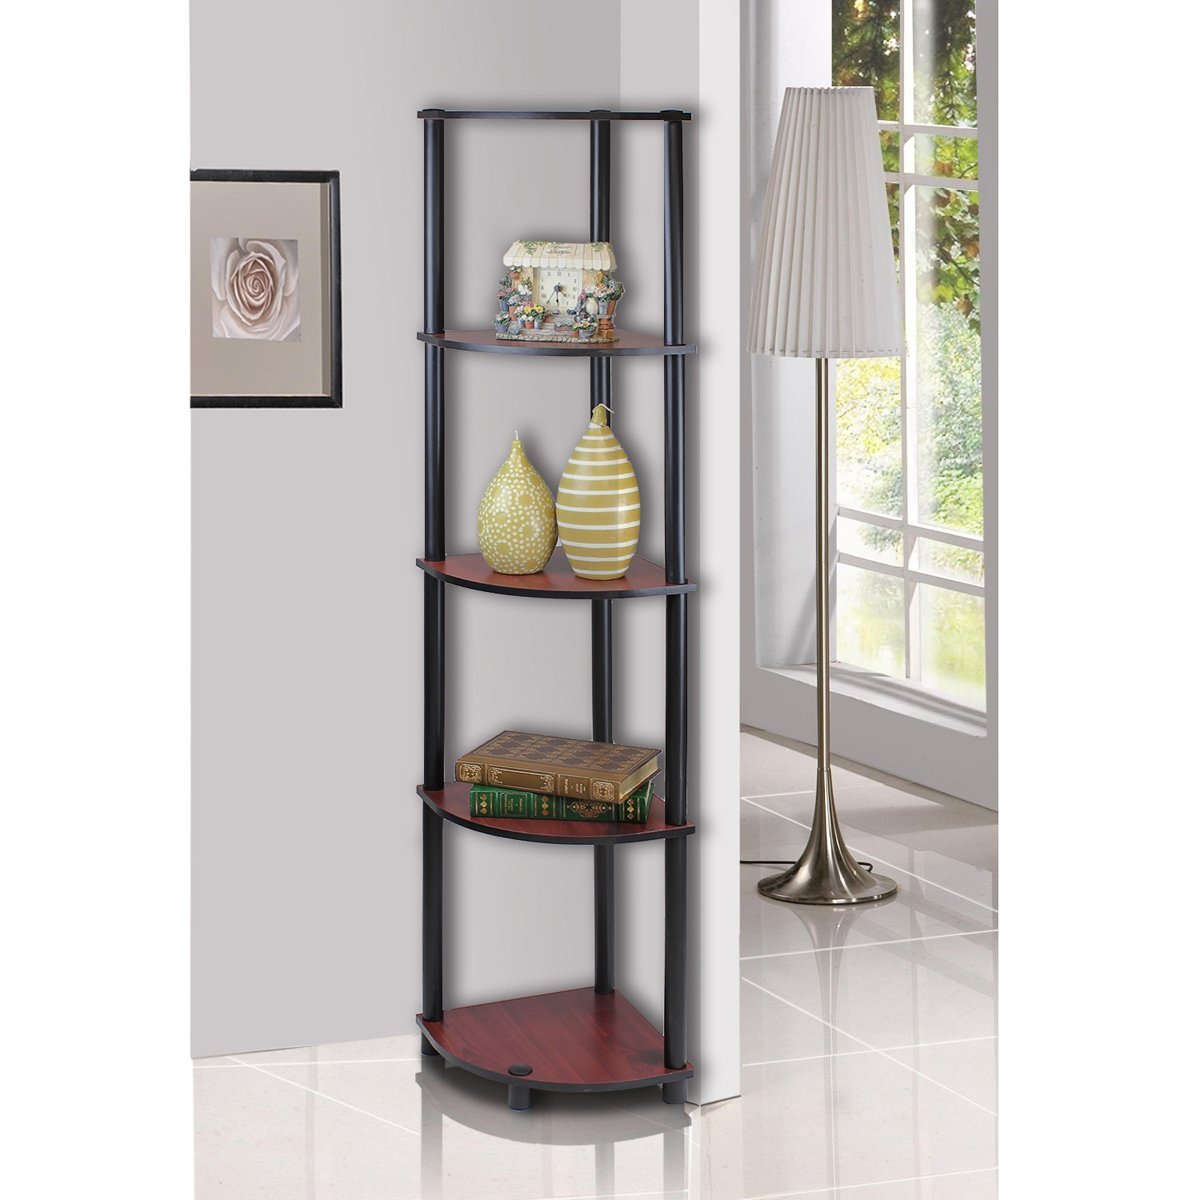 5 tier multi purpose corner shelving unit dark cherryblack color furinno 5 tier multi purpose corner shelving unit dark cherryblack color amipublicfo Choice Image